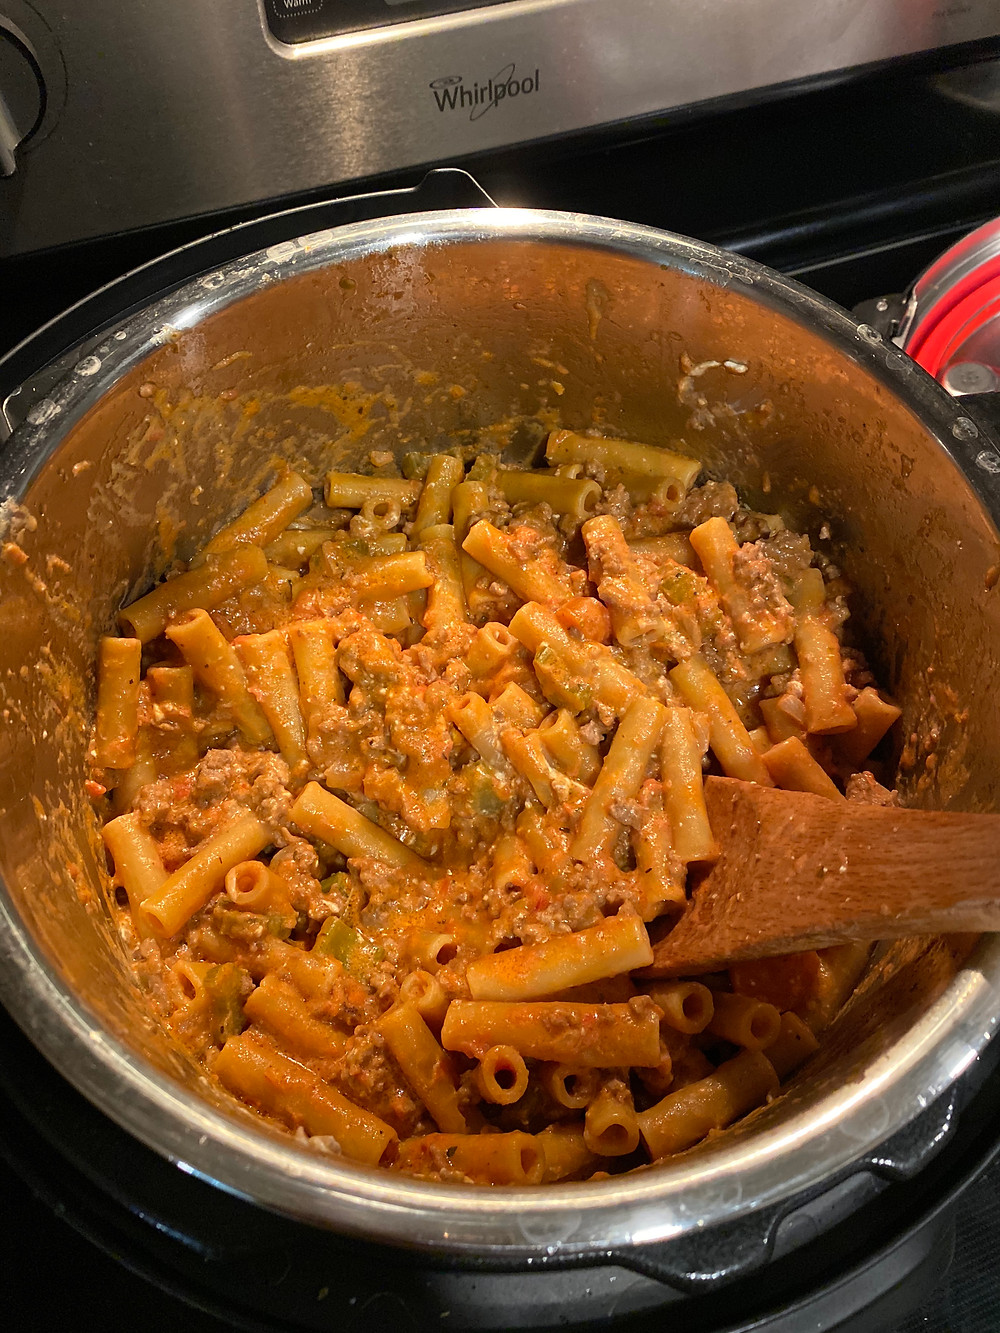 Pasta Bolognese that Galina Clark made in the InstaPot she received in her winter package.